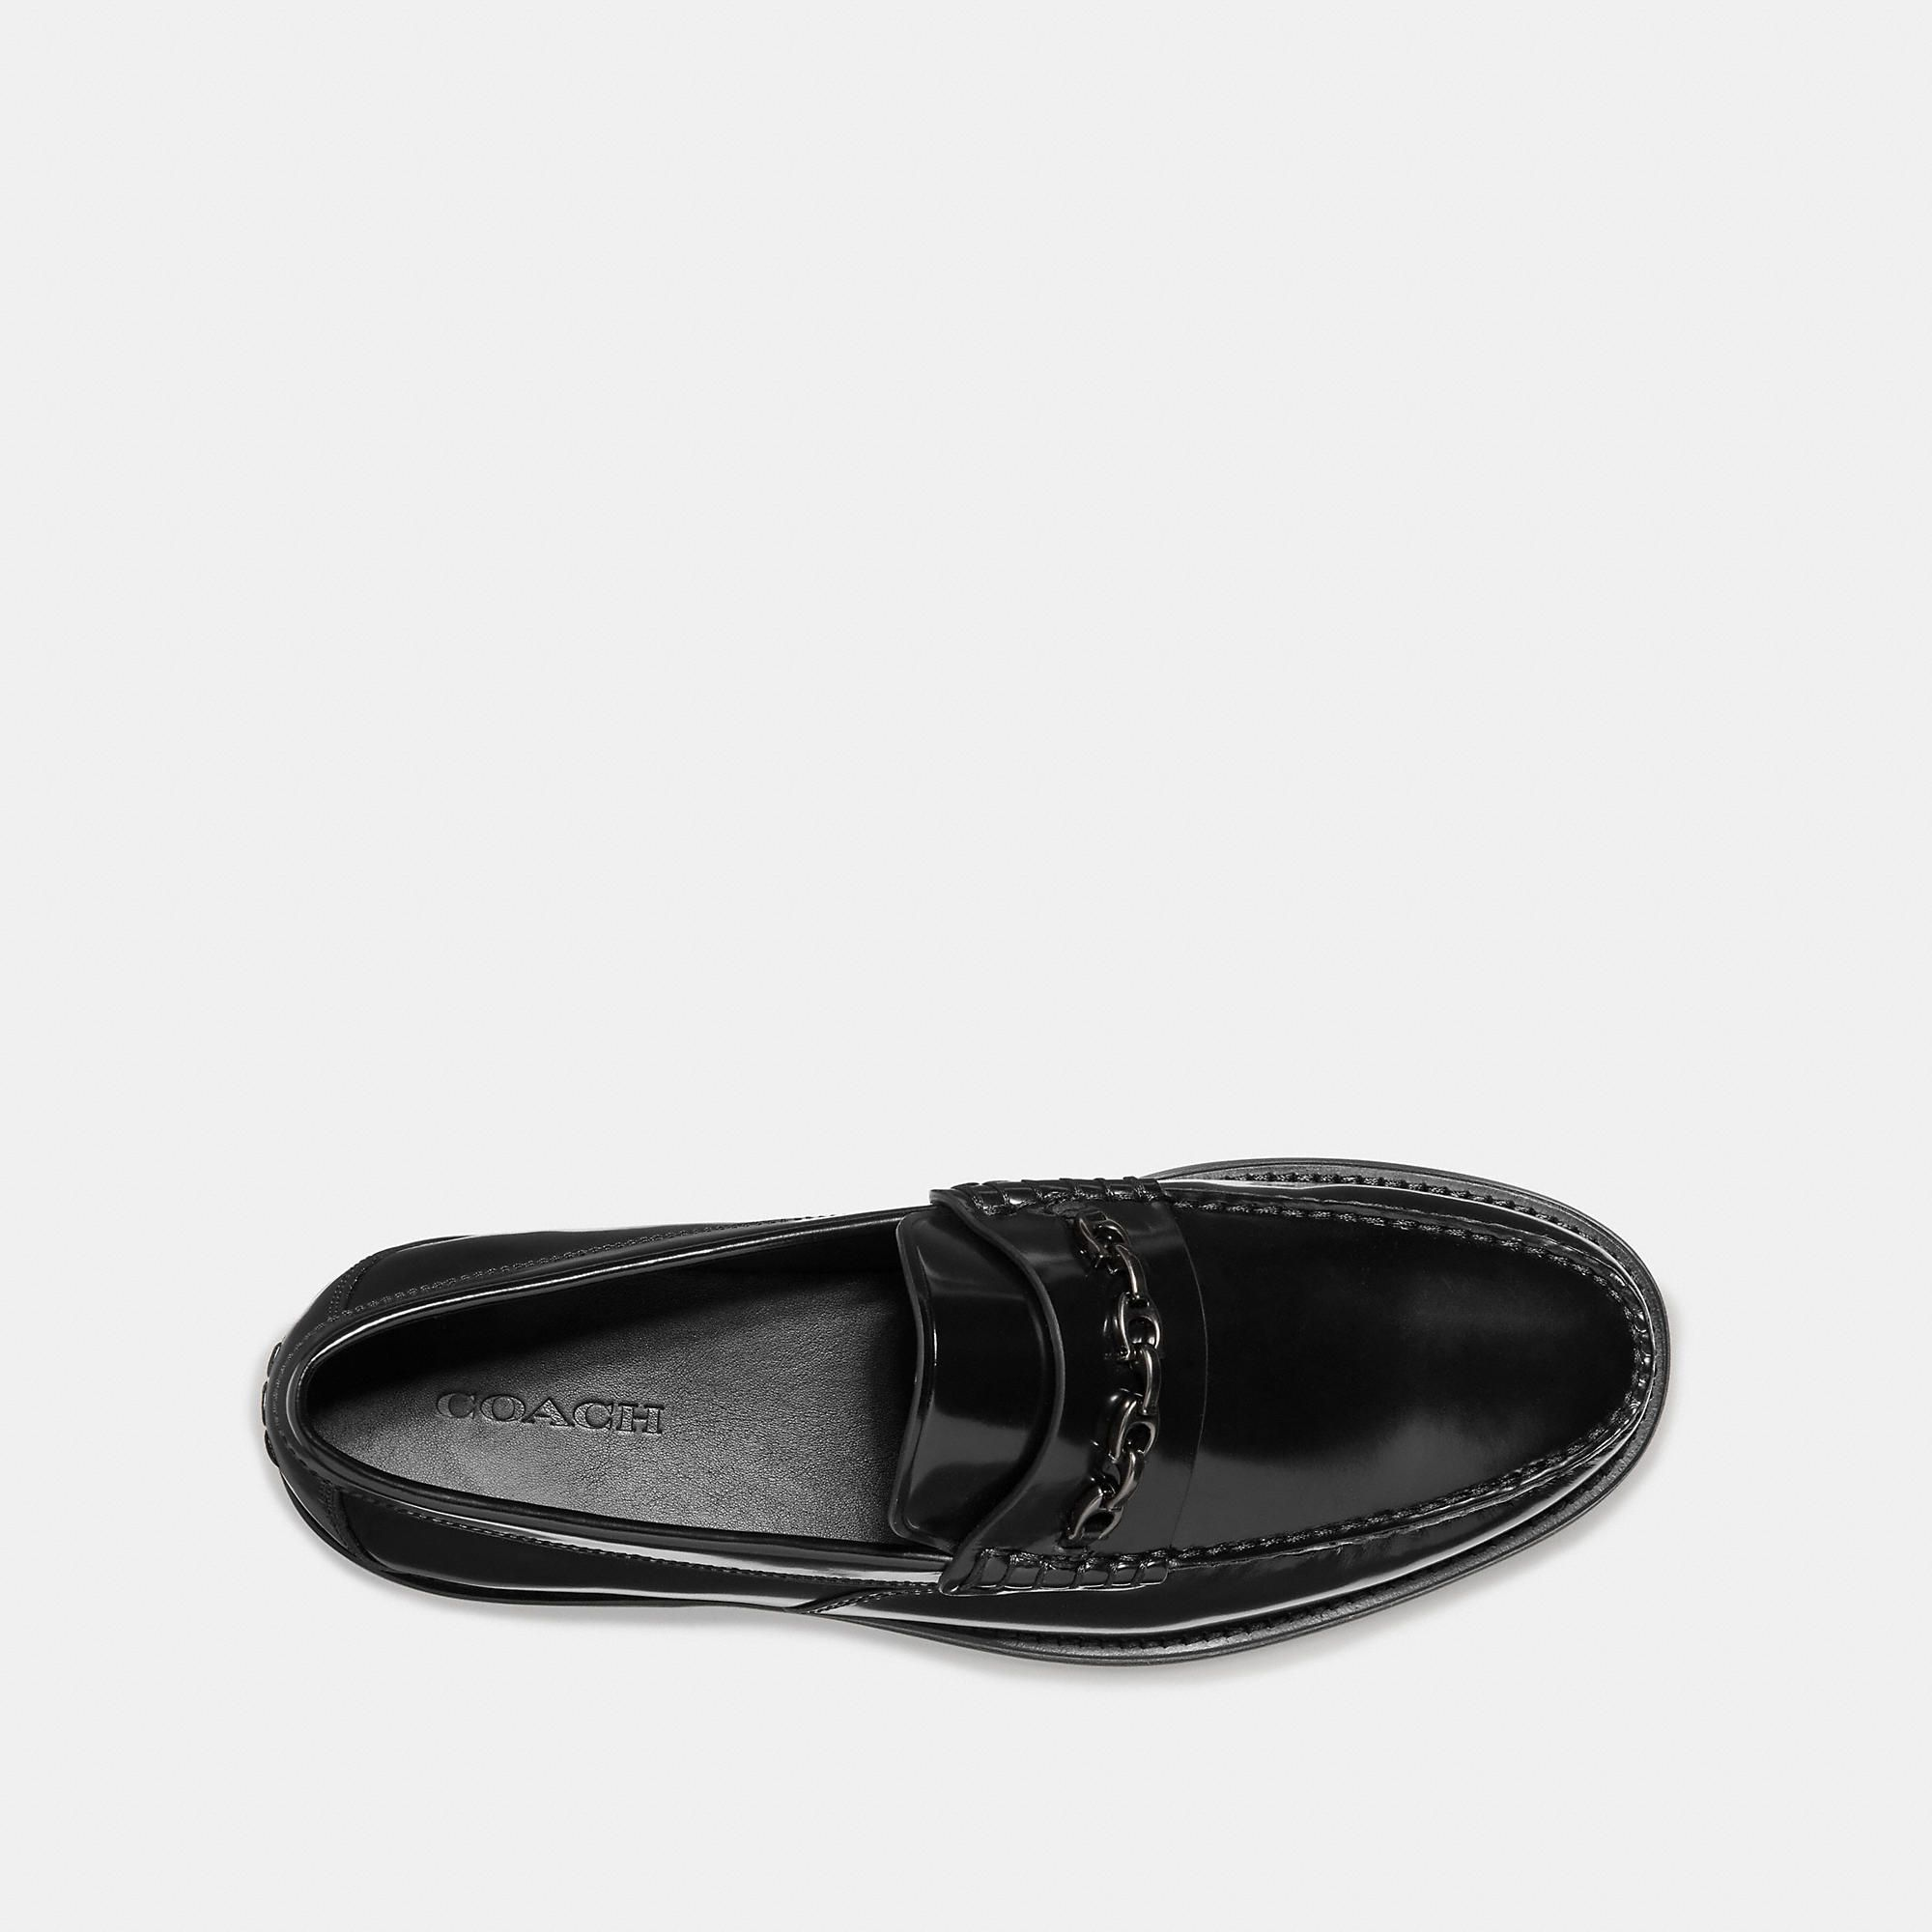 fd5f8dc9acb COACH Men s Chain Loafer Size 12 D Loafers